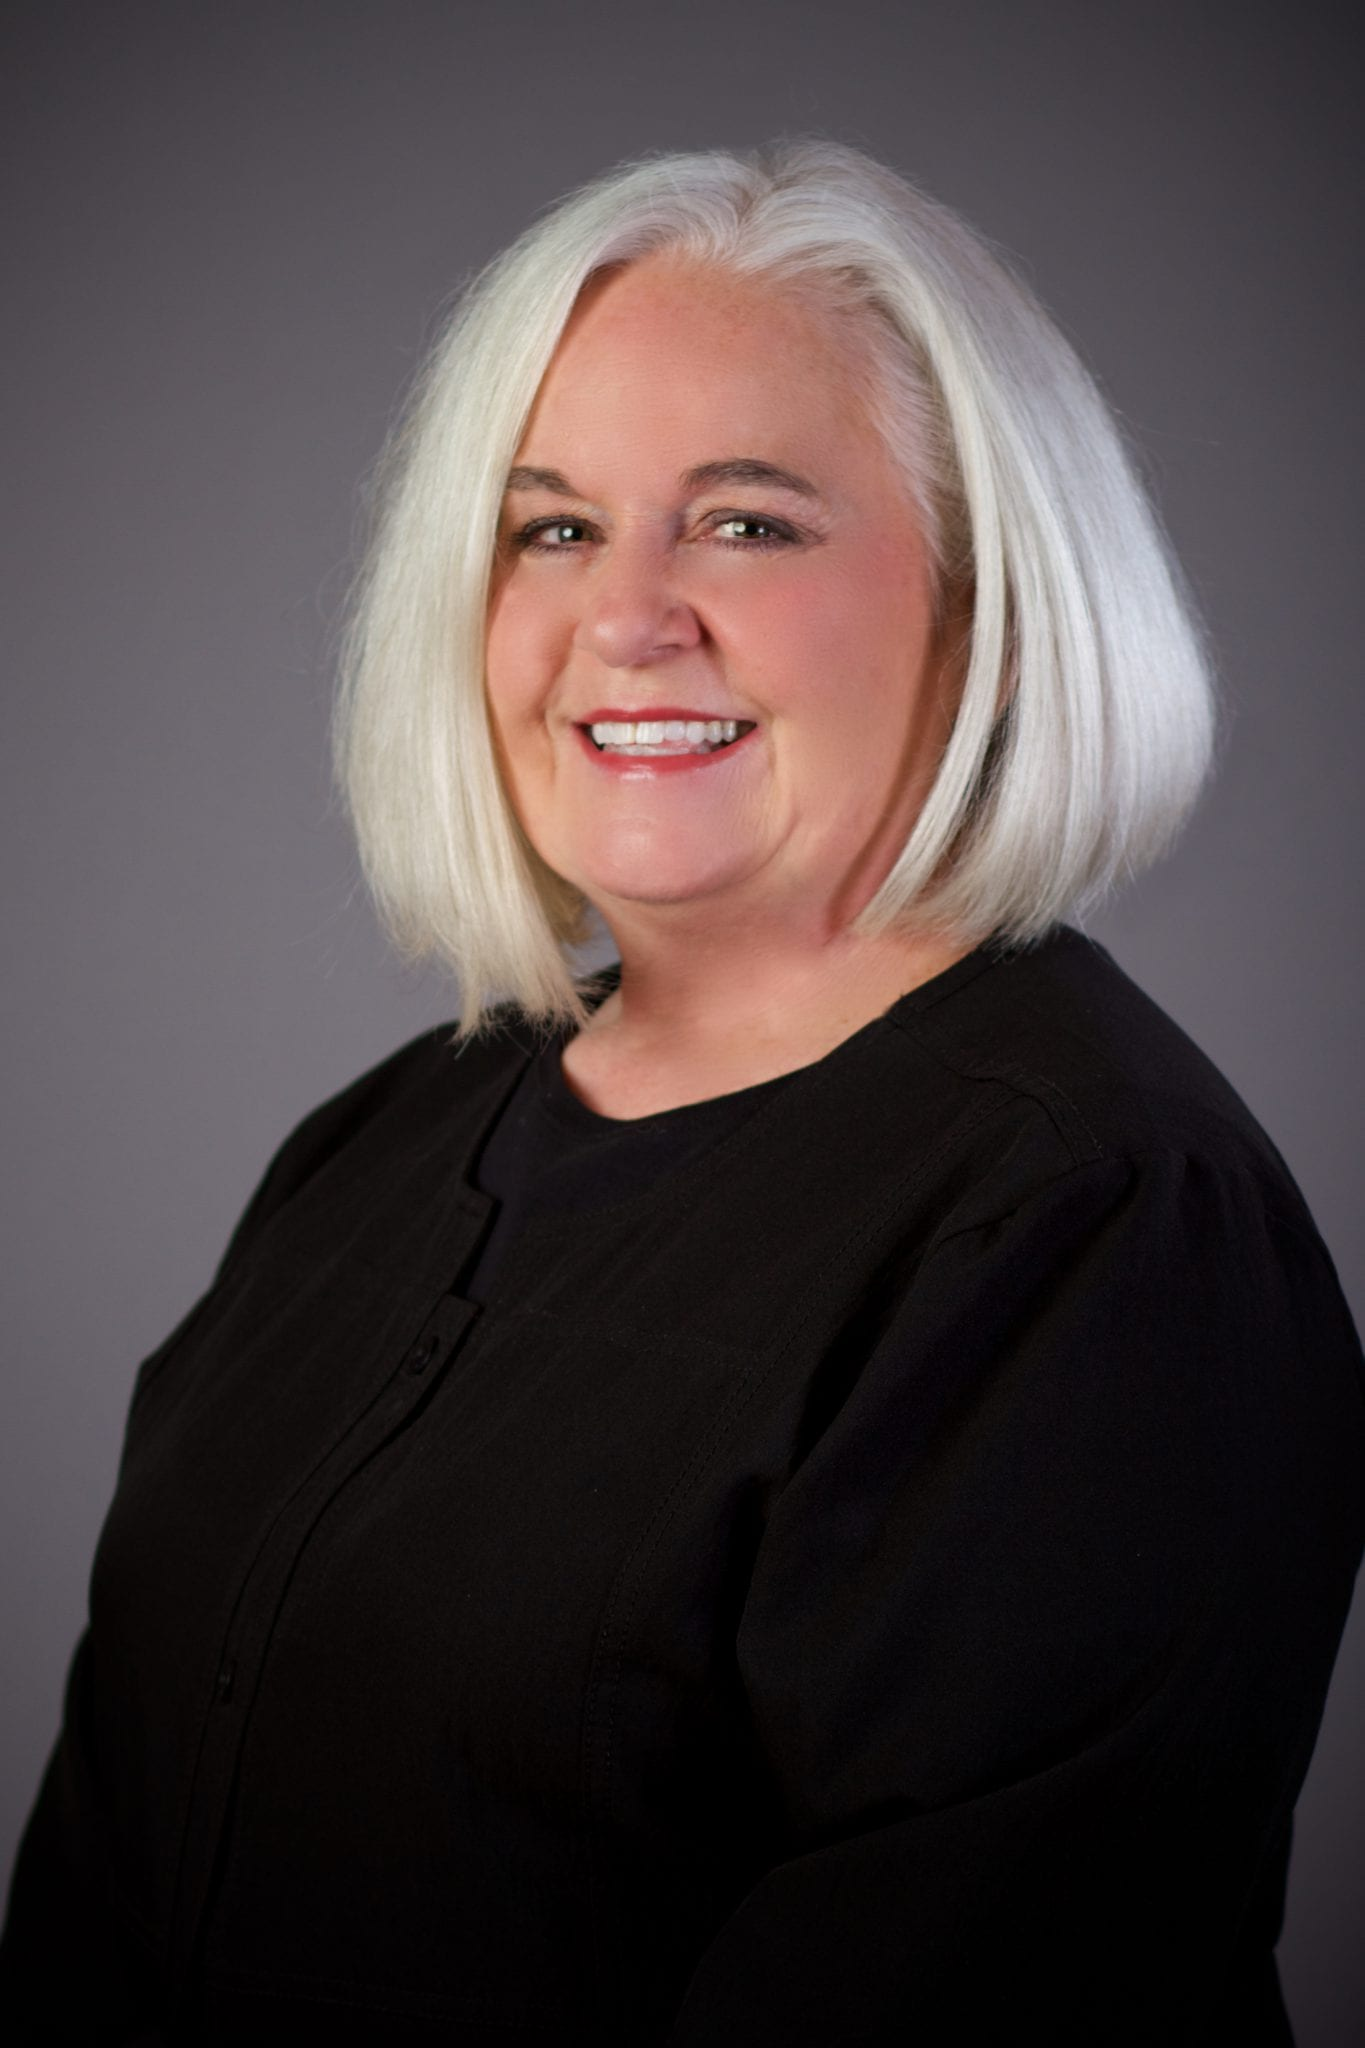 Ann who is a Hygienist at Birdwell and Guffey Family Dentistry in South Knoxville